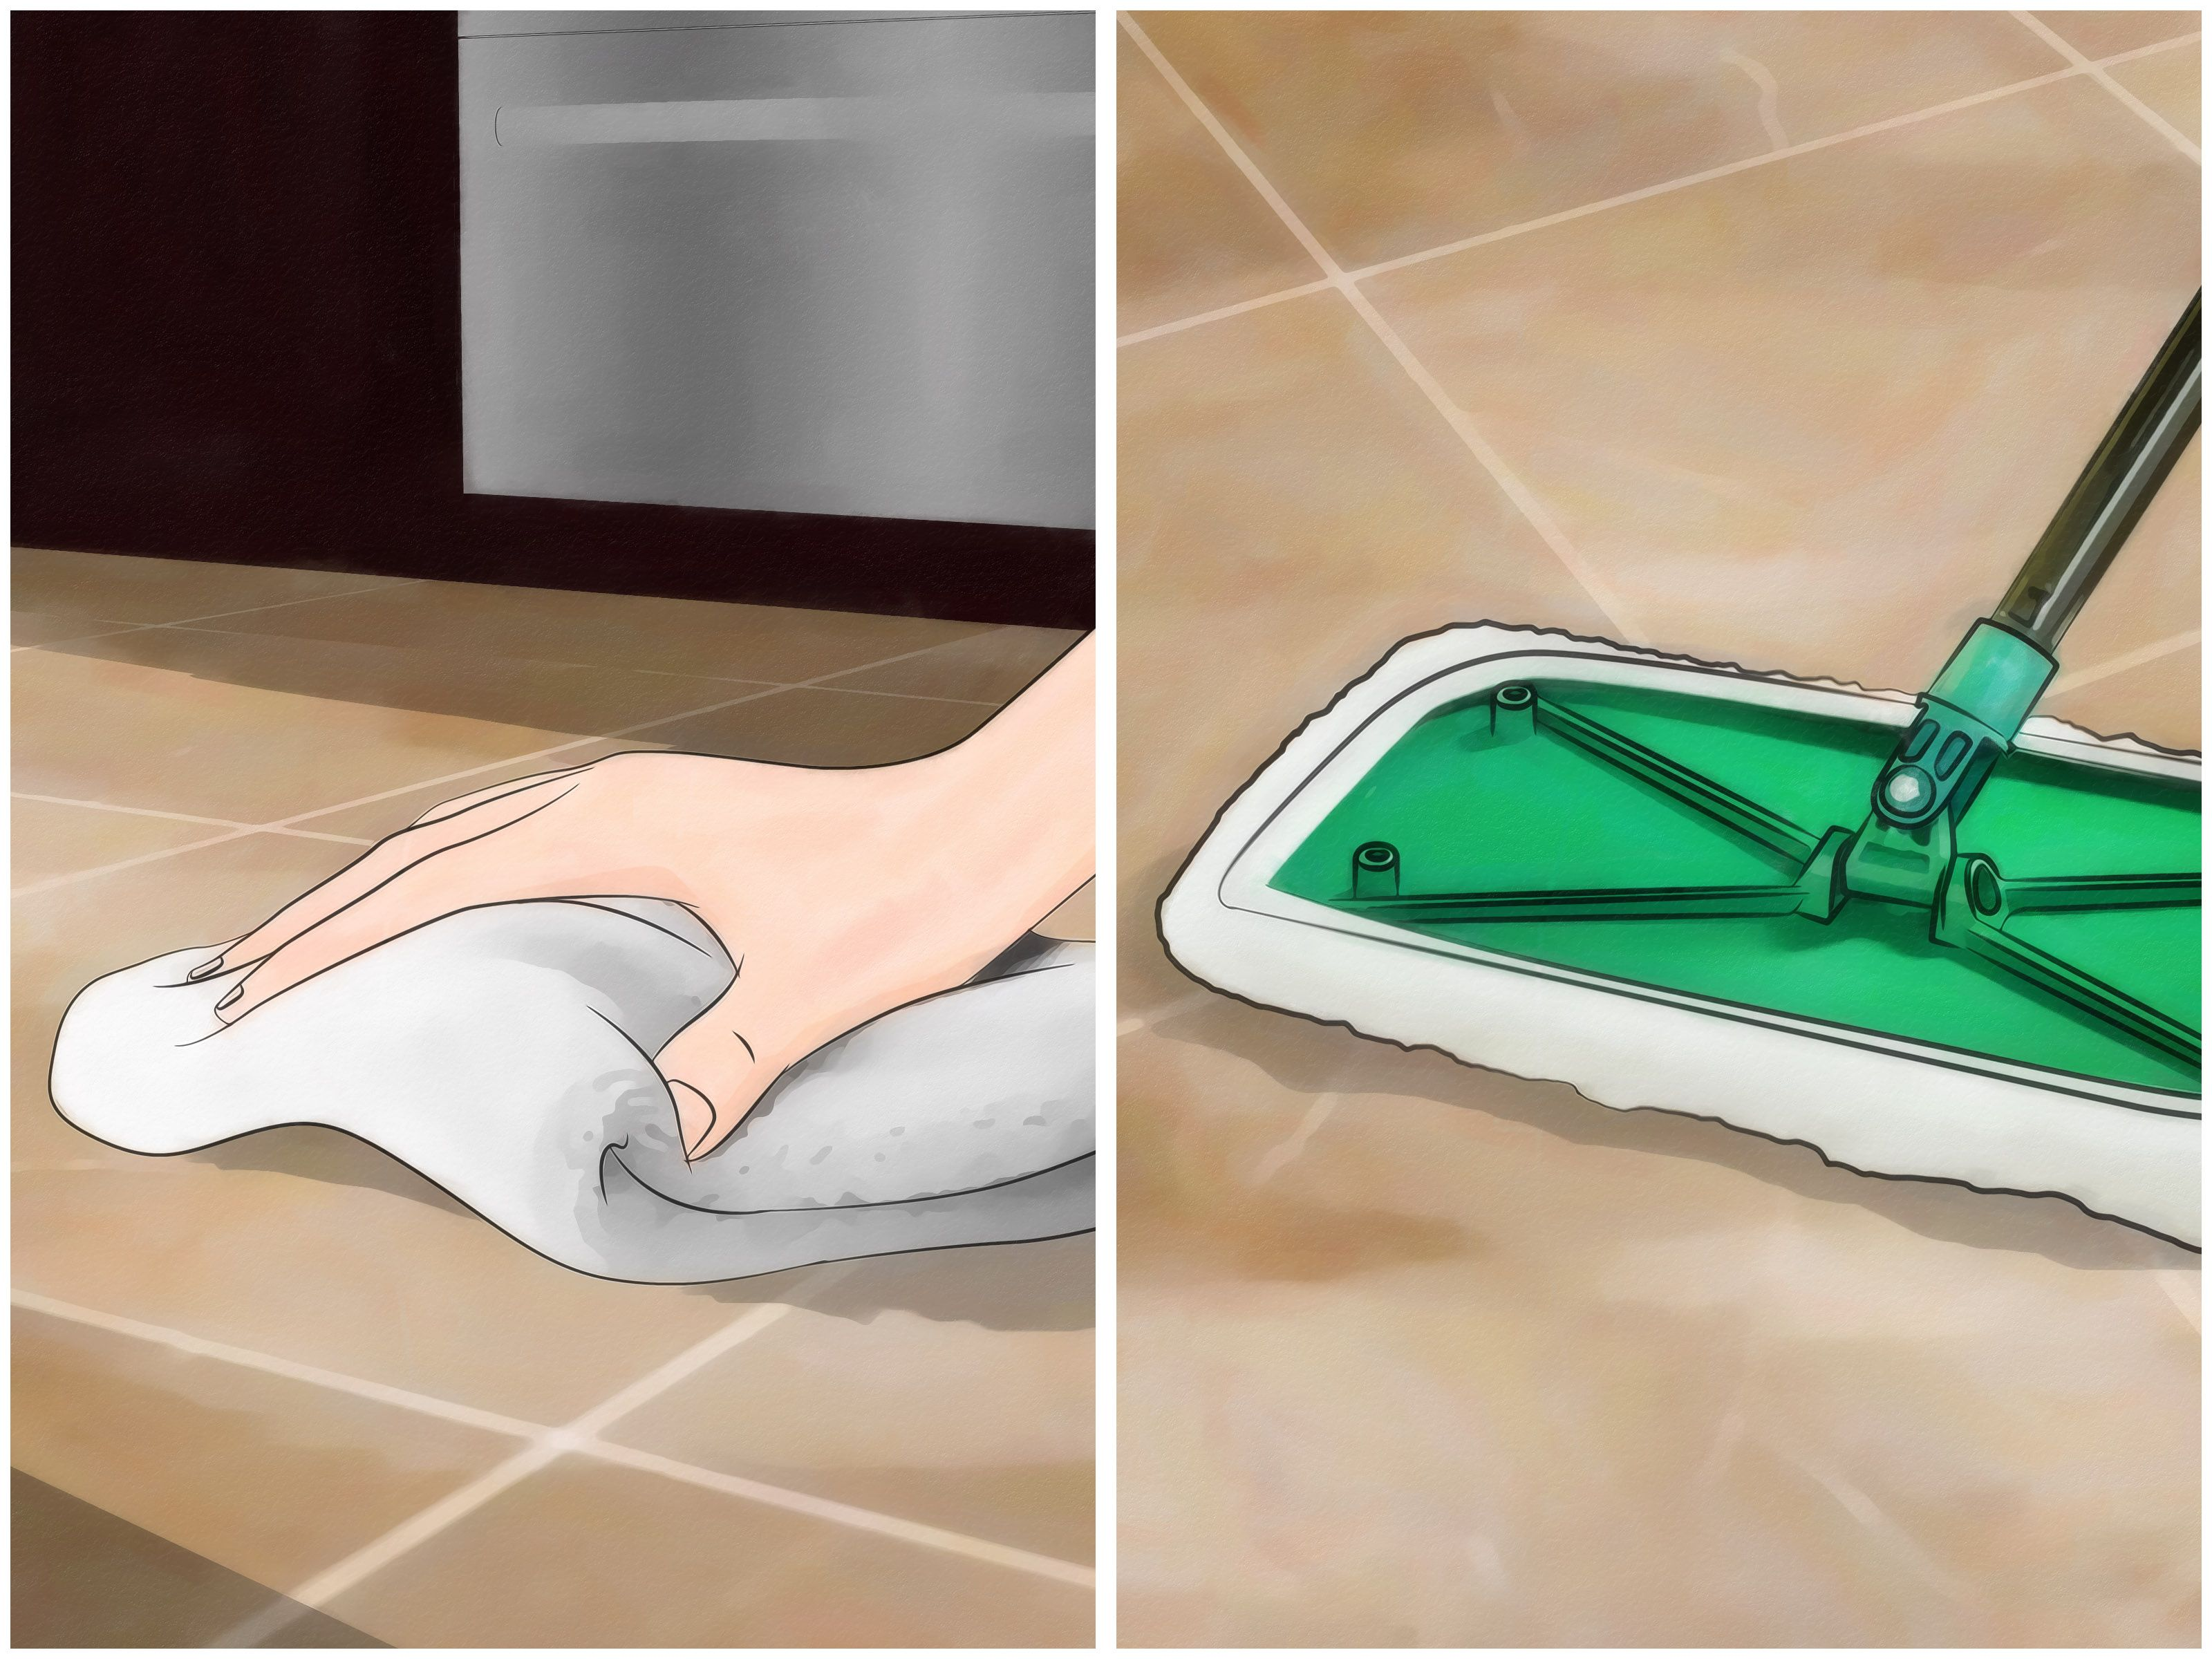 Clean grout between floor tiles diy clean tile grout - How to clean bathroom grout and tiles ...